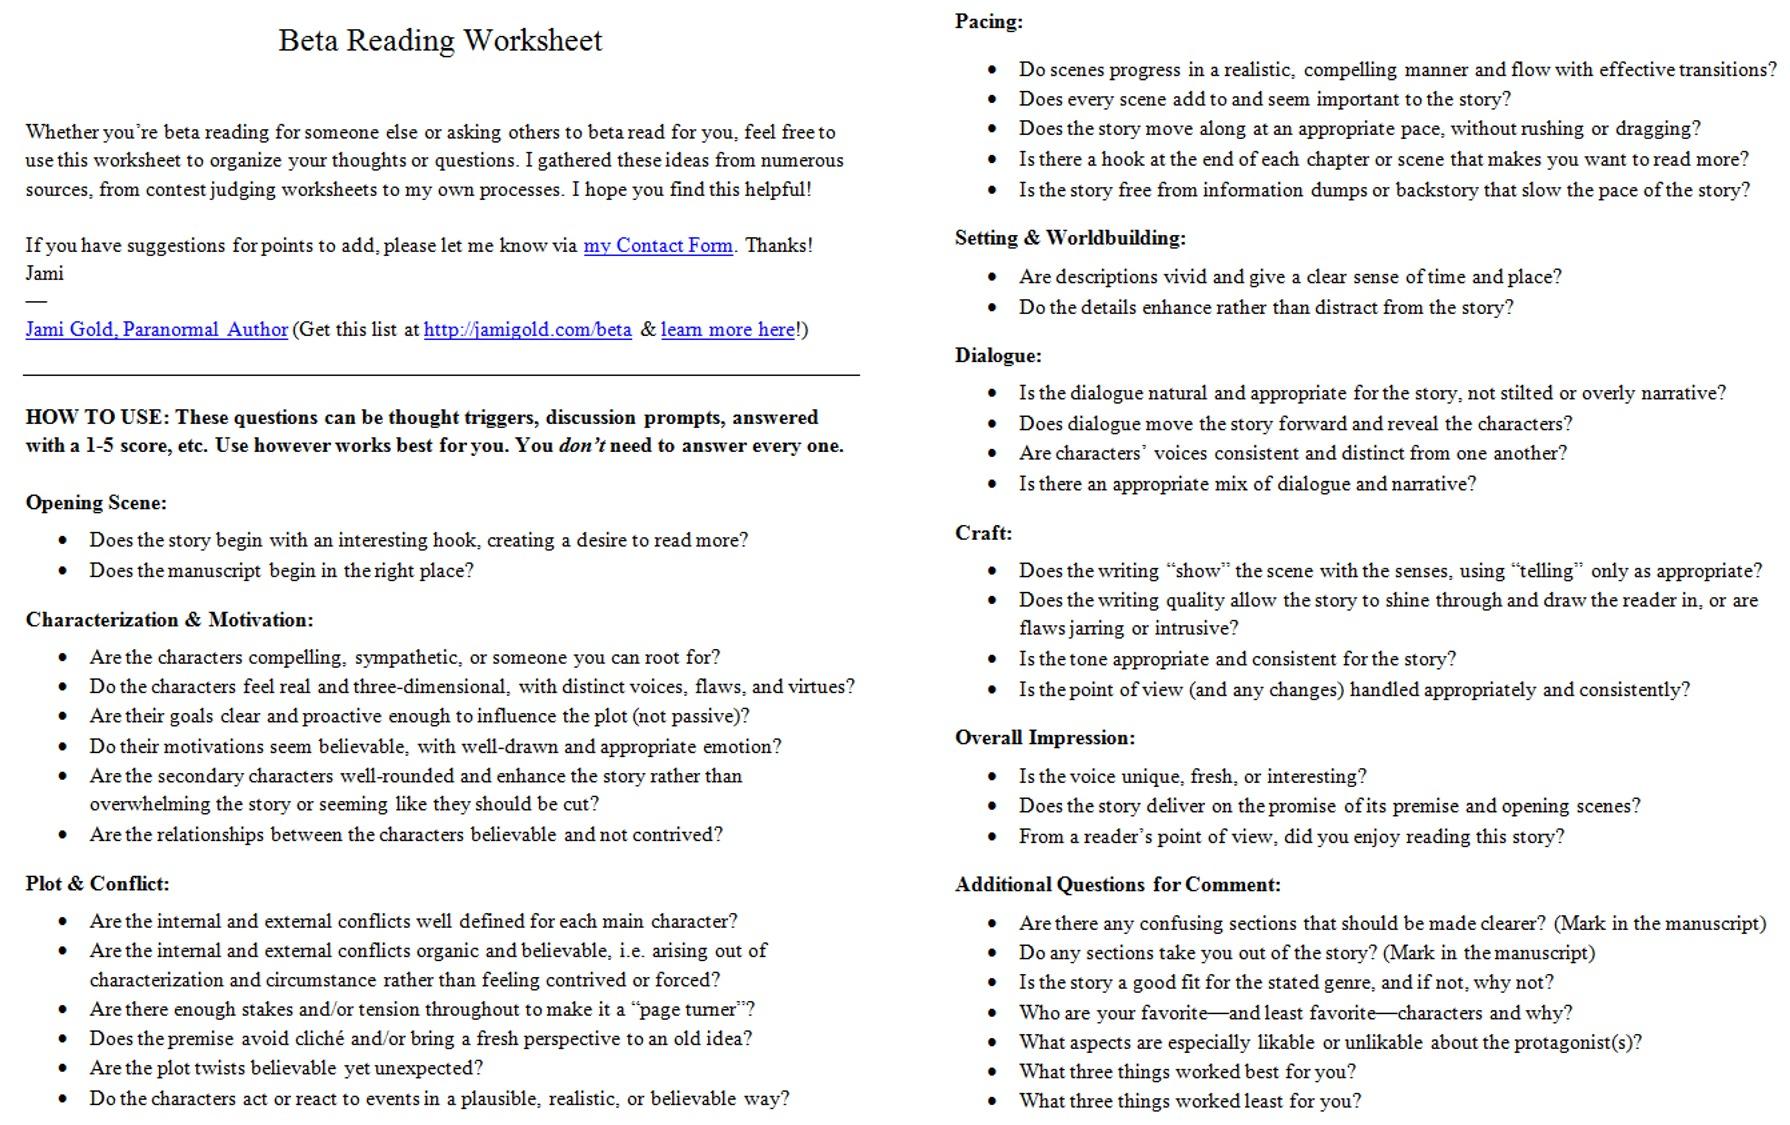 Aldiablosus  Unique Worksheets For Writers  Jami Gold Paranormal Author With Handsome Screen Shot Of The Twopage Beta Reading Worksheet With Breathtaking Pumpkin Life Cycle Worksheets Also New Testament Worksheets In Addition Spanish Verb Gustar Worksheet And Financial Goal Setting Worksheet As Well As Cutting Worksheets For Kindergarten Additionally Math Worksheet Online From Jamigoldcom With Aldiablosus  Handsome Worksheets For Writers  Jami Gold Paranormal Author With Breathtaking Screen Shot Of The Twopage Beta Reading Worksheet And Unique Pumpkin Life Cycle Worksheets Also New Testament Worksheets In Addition Spanish Verb Gustar Worksheet From Jamigoldcom